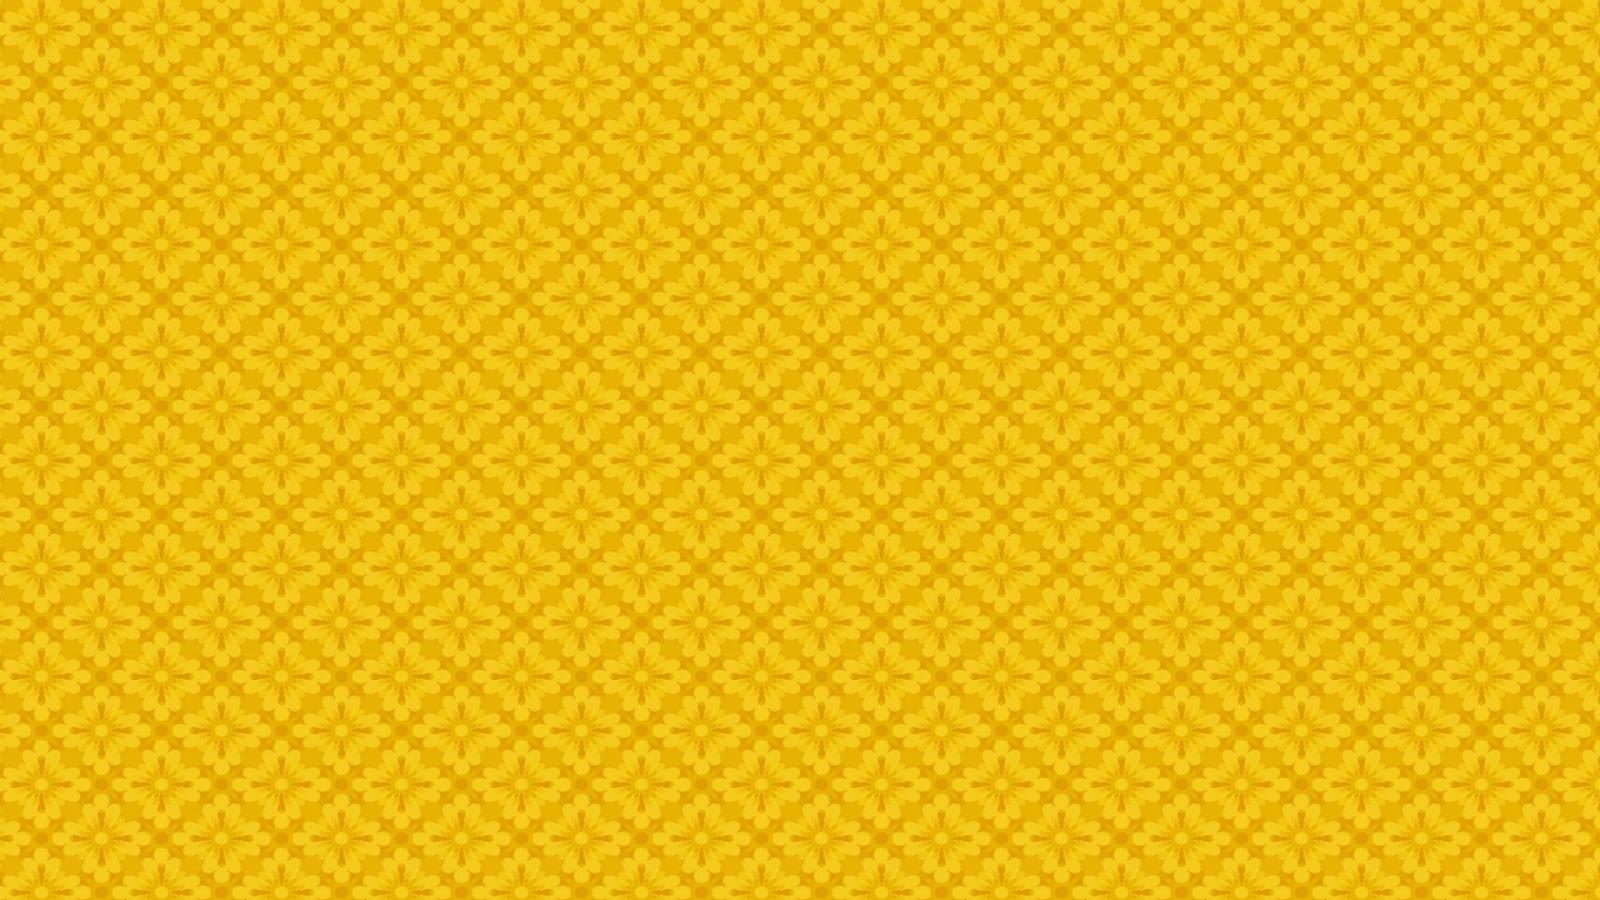 yellow floral pattern - photo #42